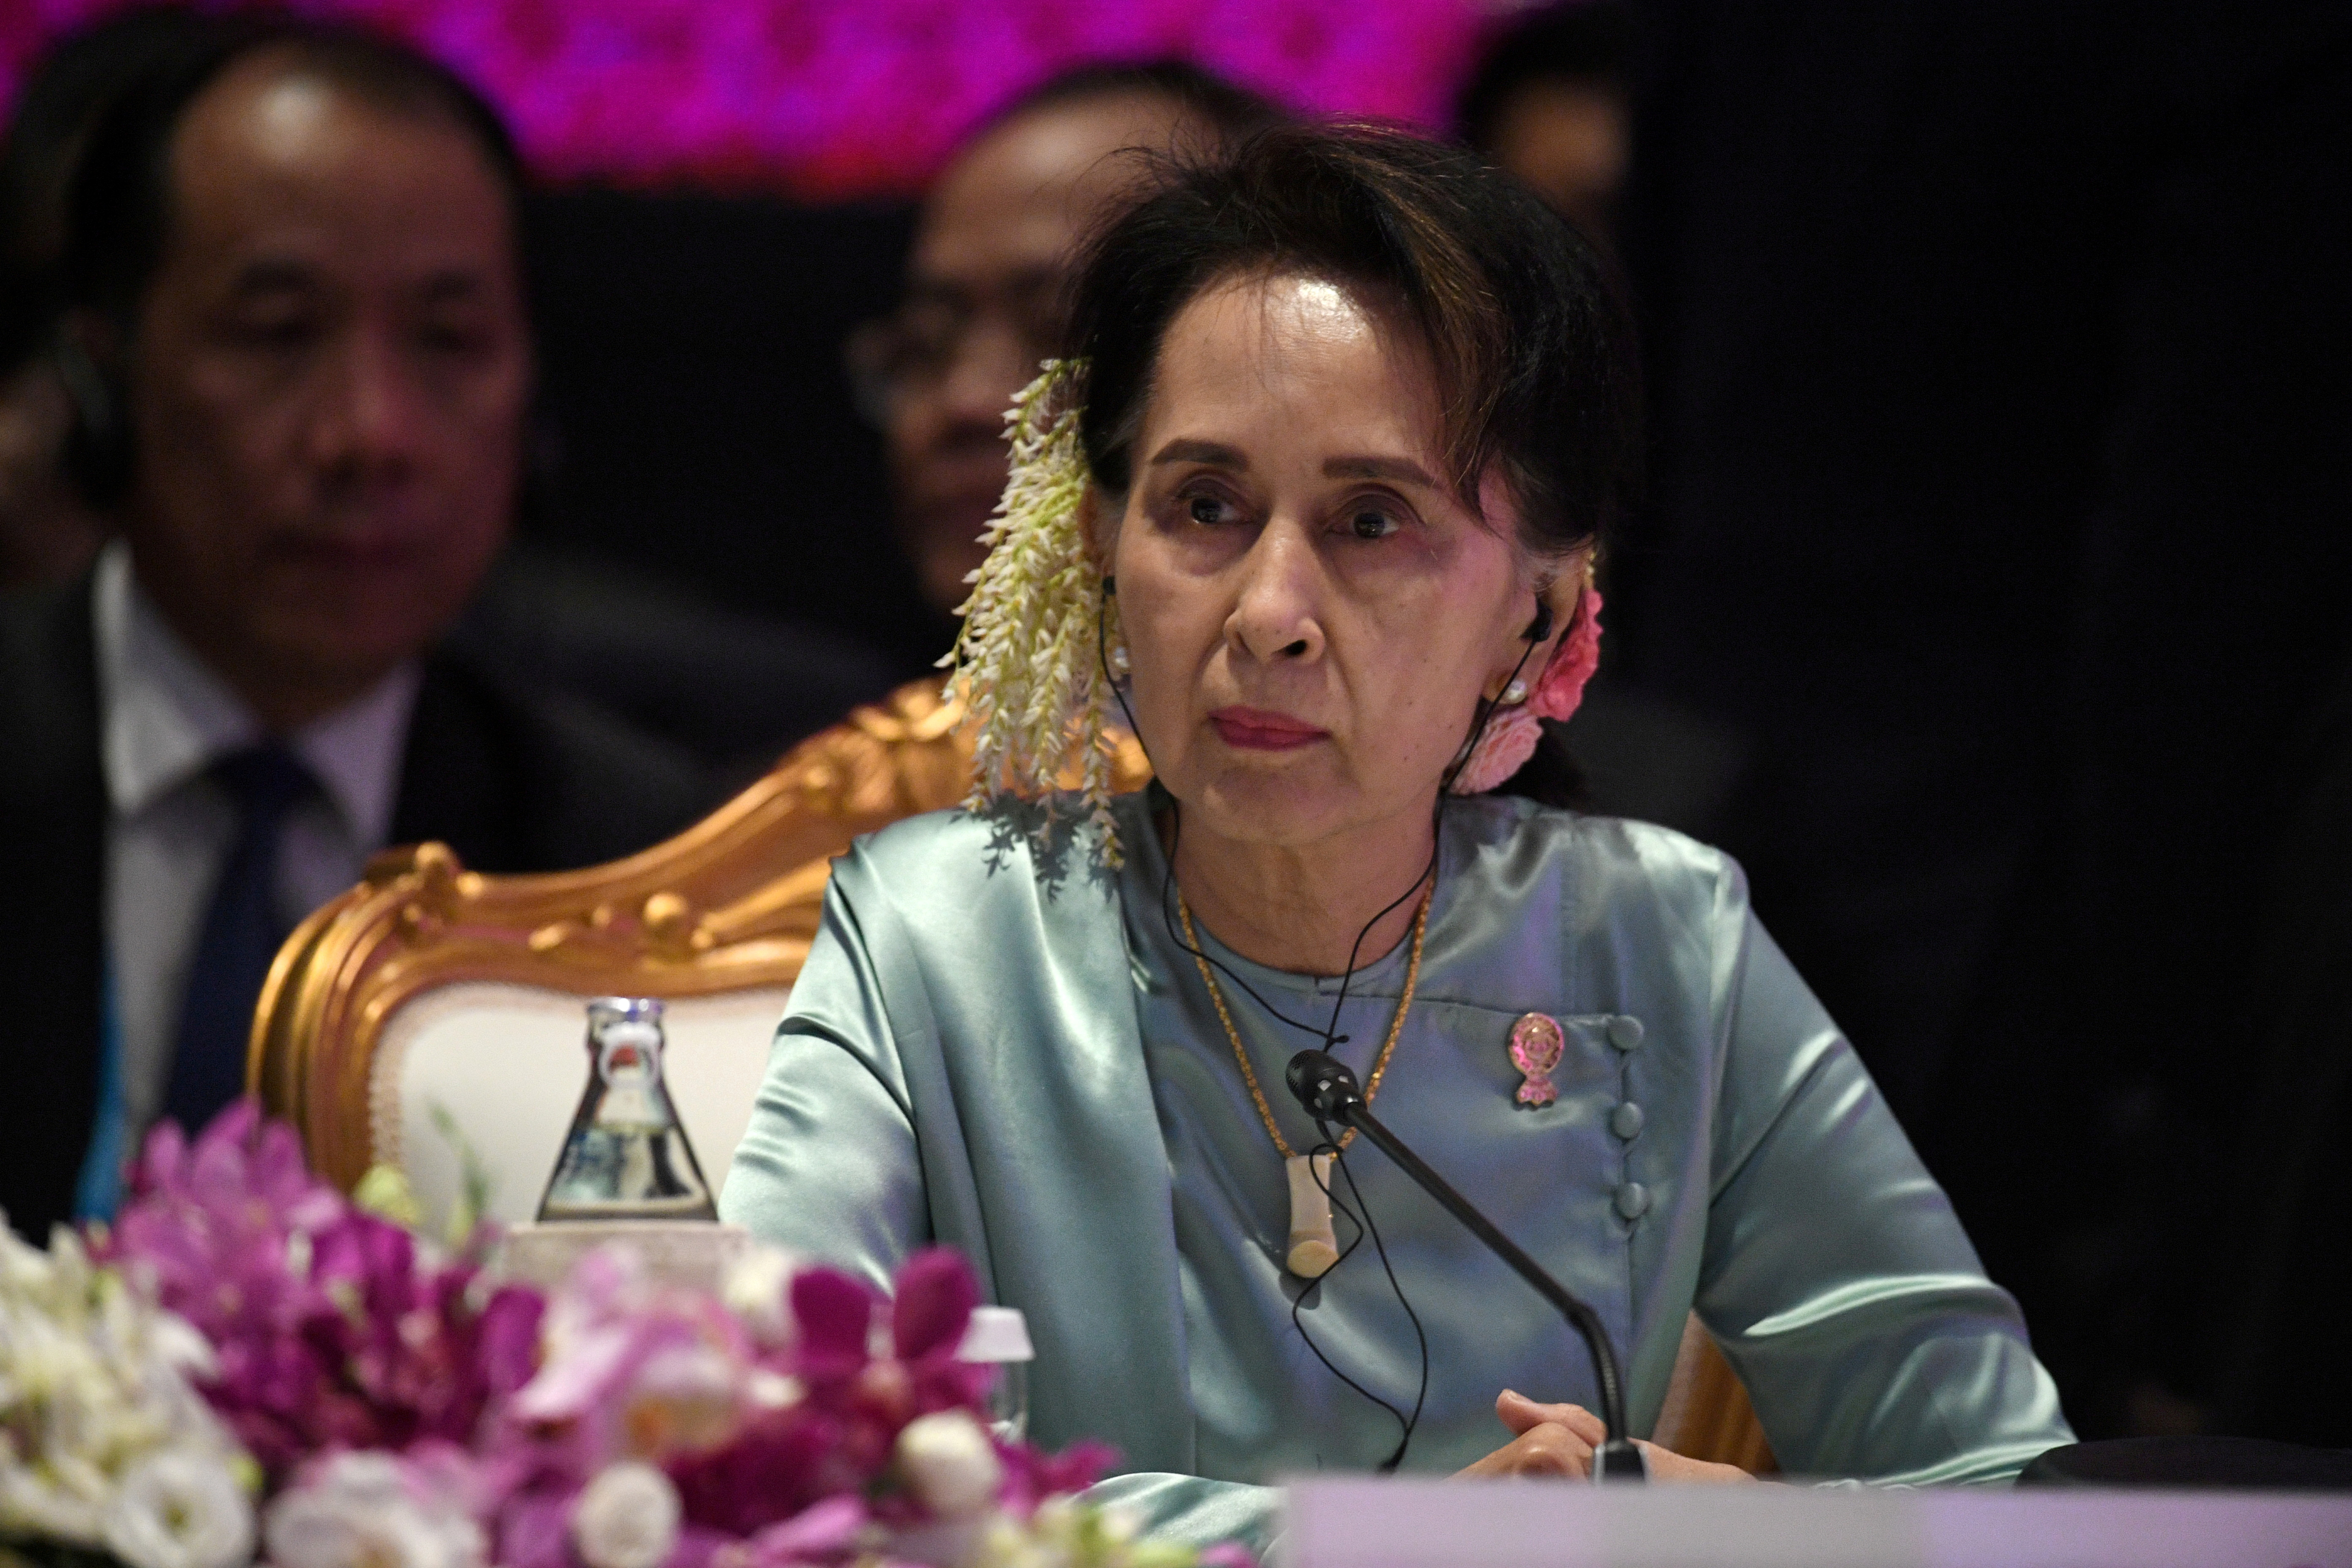 State Counsellor of Myanmar Aung San Suu Kyi attends the 22nd ASEAN Plus Three Summit in Bangkok, Thailand, November 4, 2019. REUTERS/Chalinee Thirasupa/File Photo/File Photo